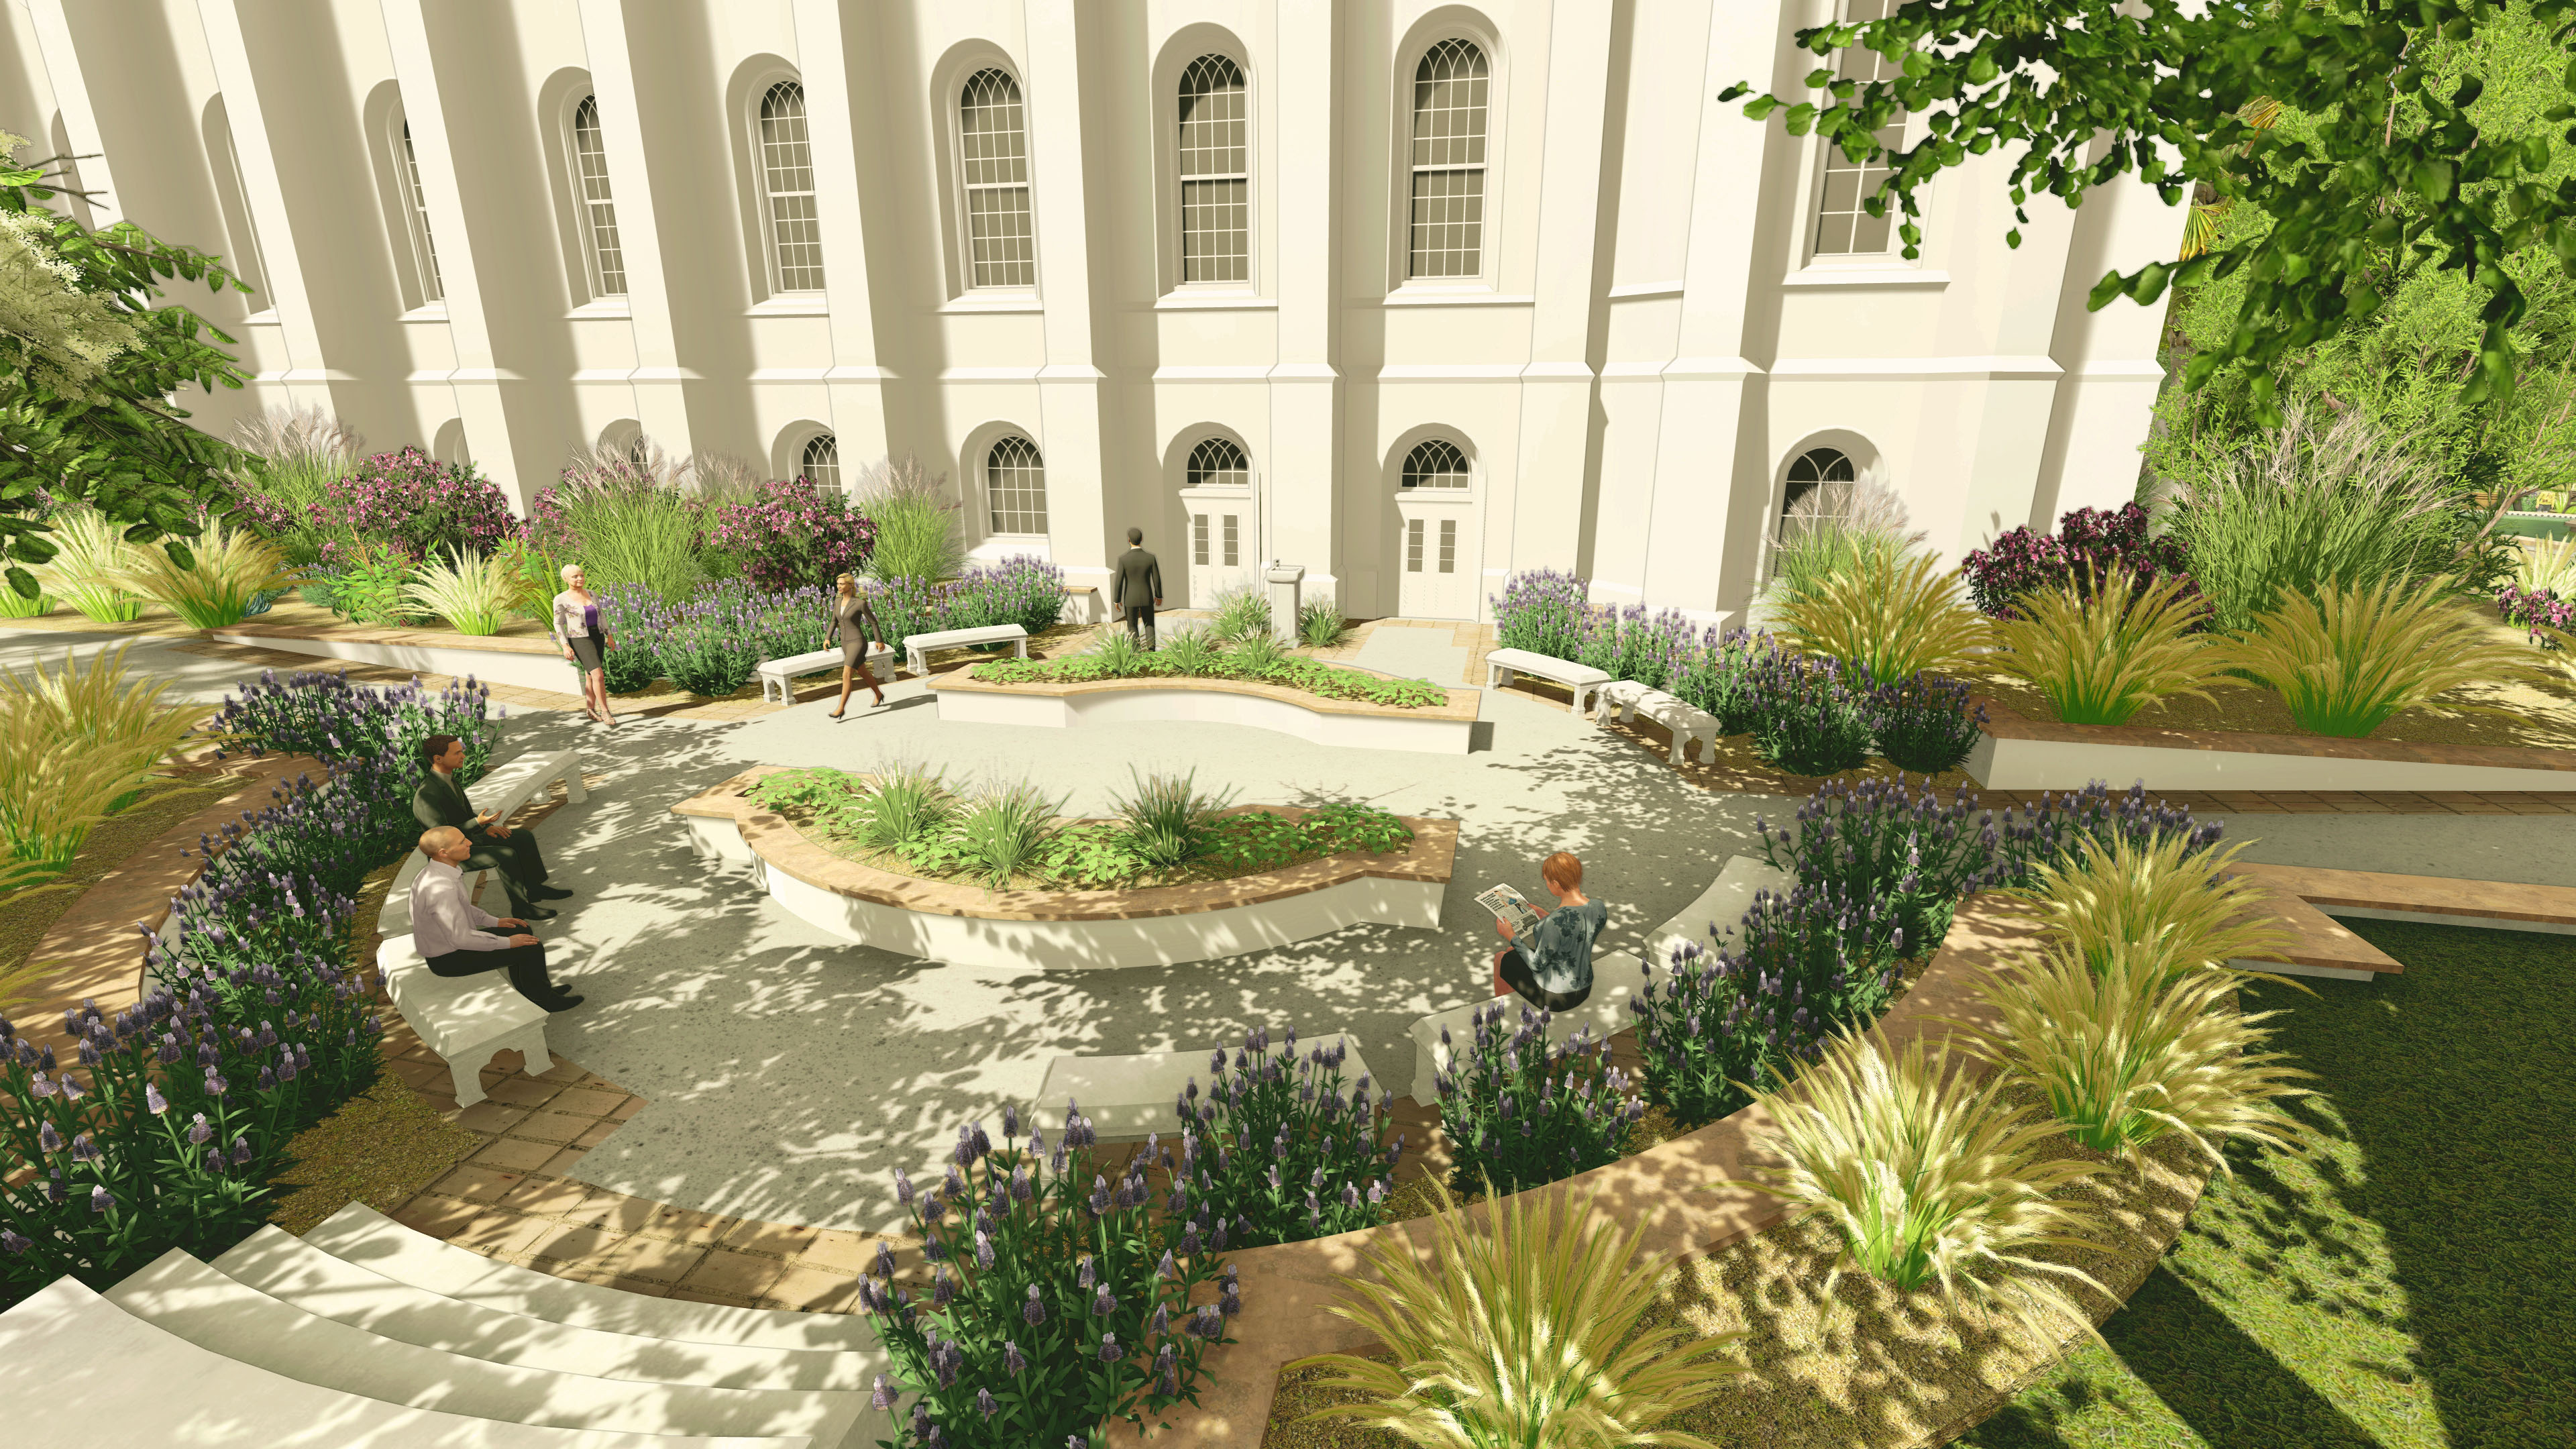 Rendering of the baptistry exit plaza at the St. George Utah Temple. The temple closed on Nov. 4, 2019, for extensive renovations.